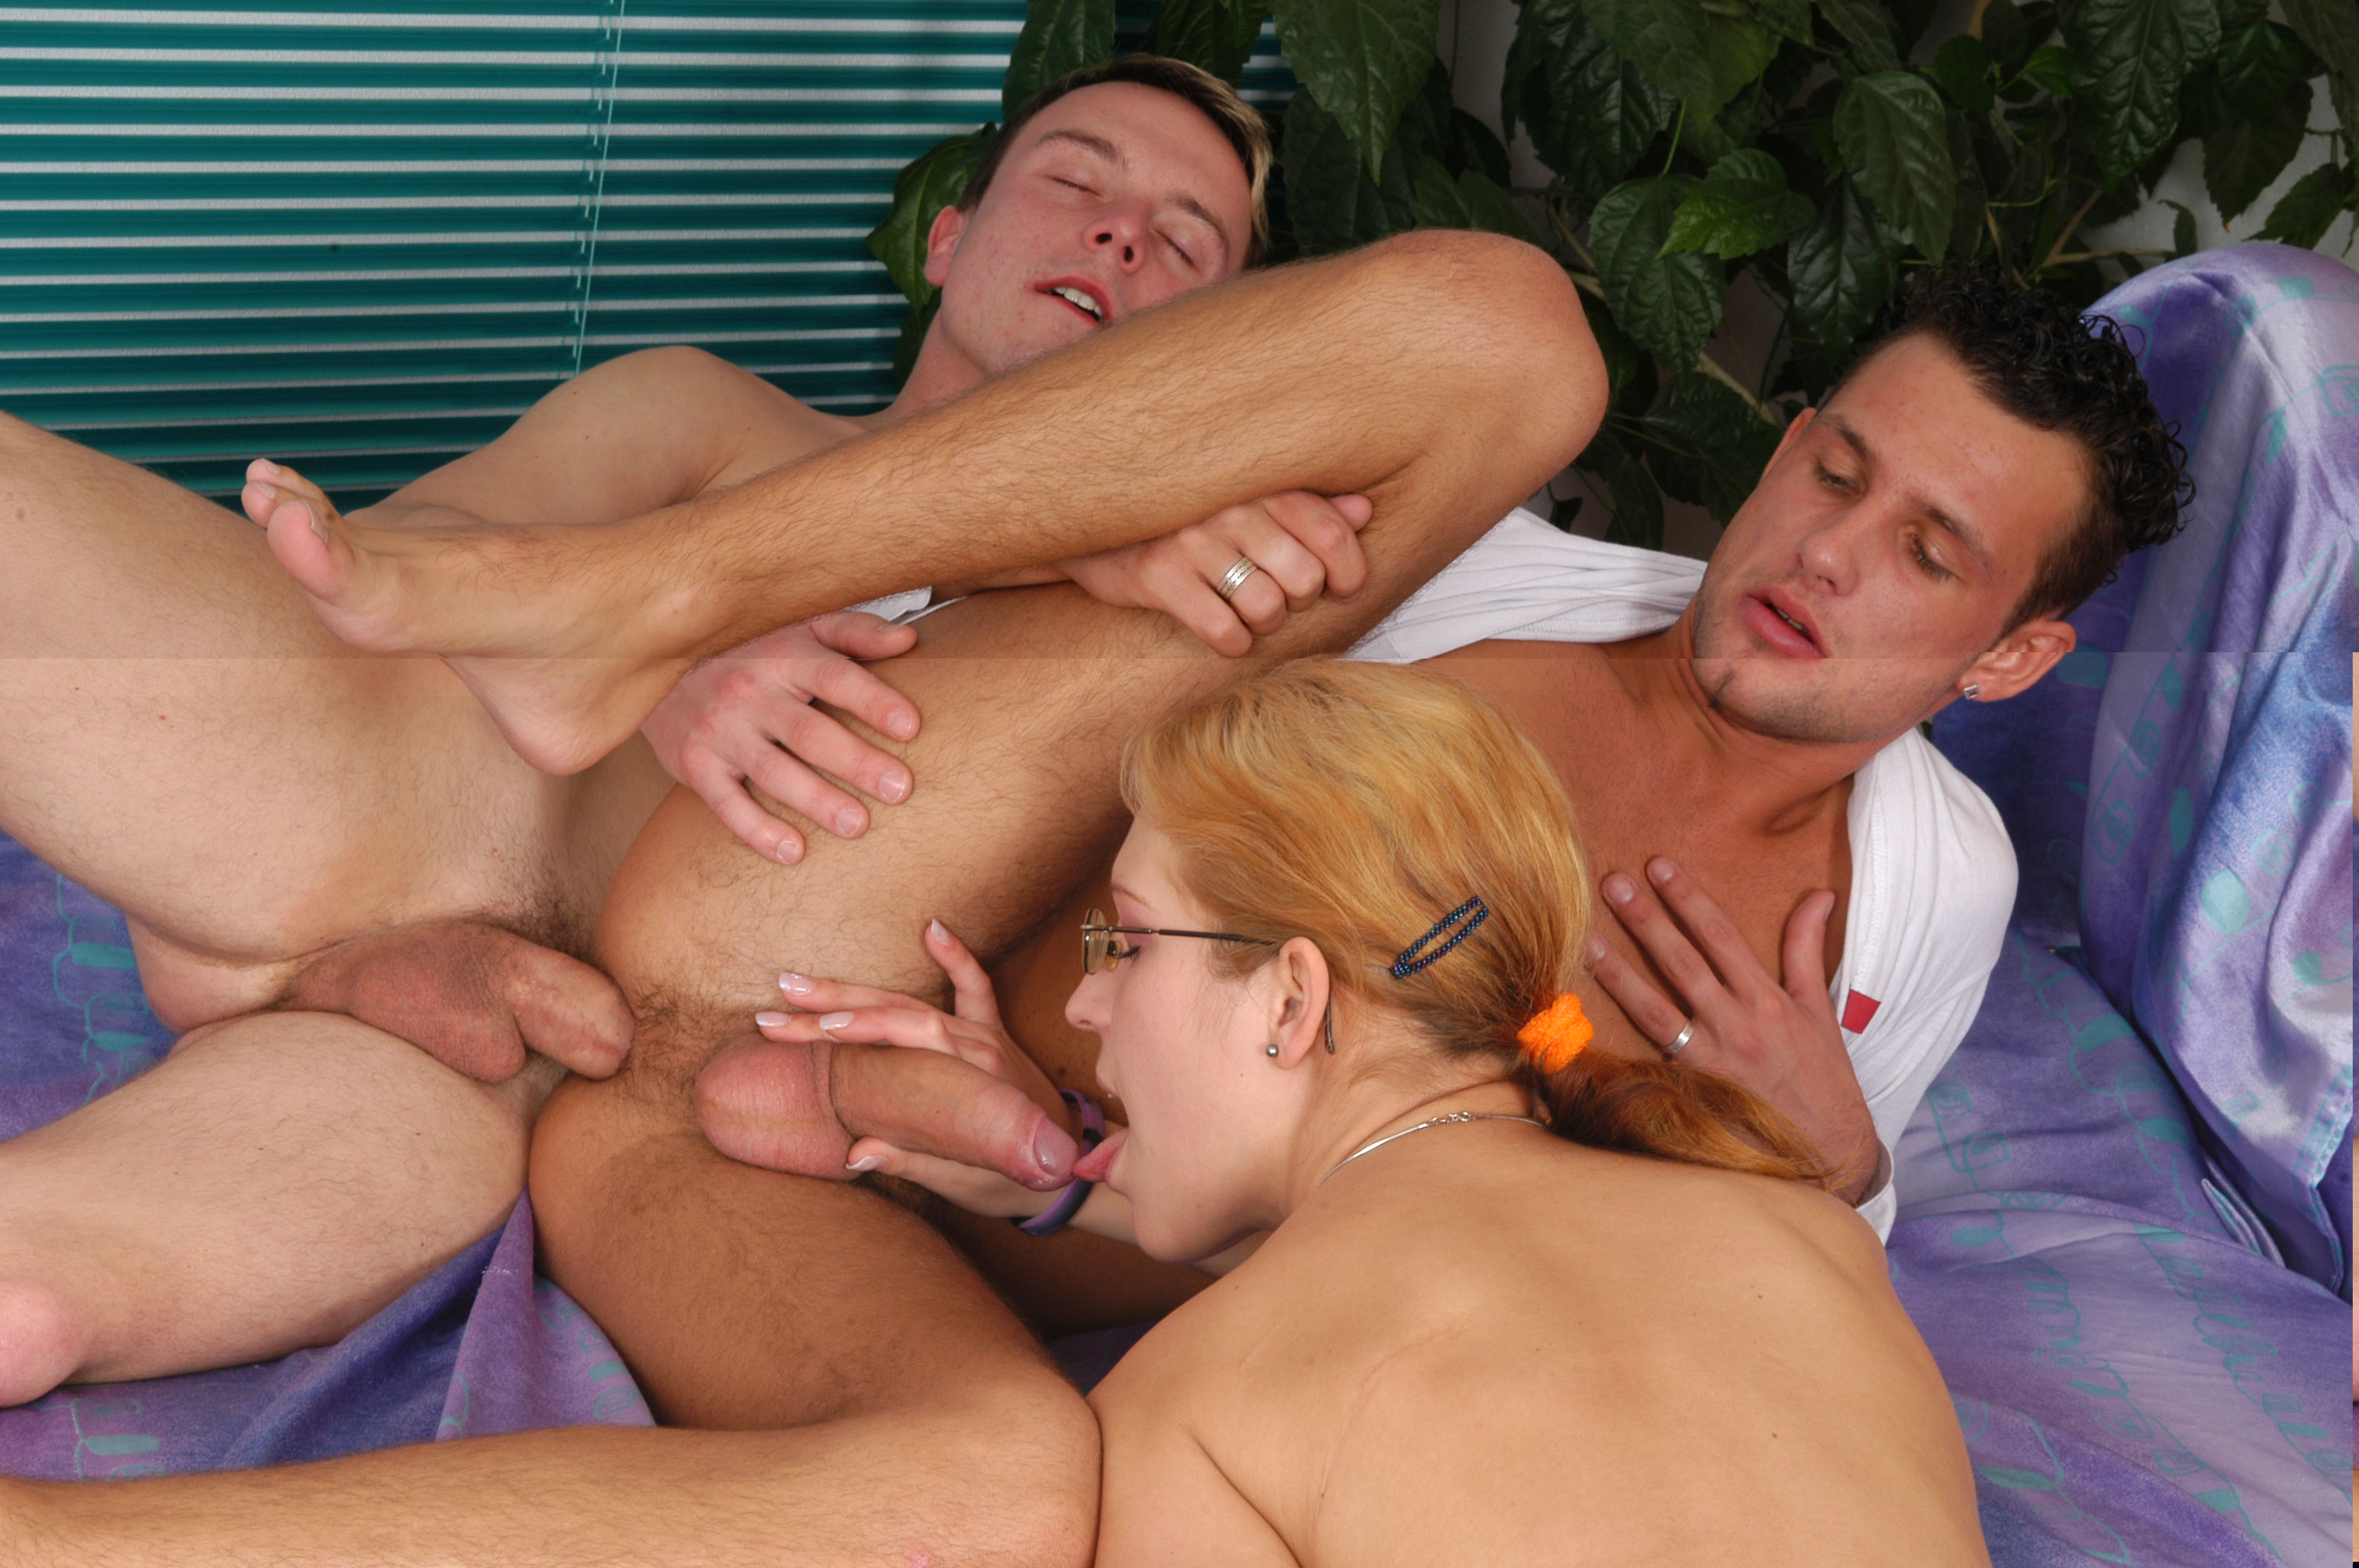 Amatuer bisexual three-way